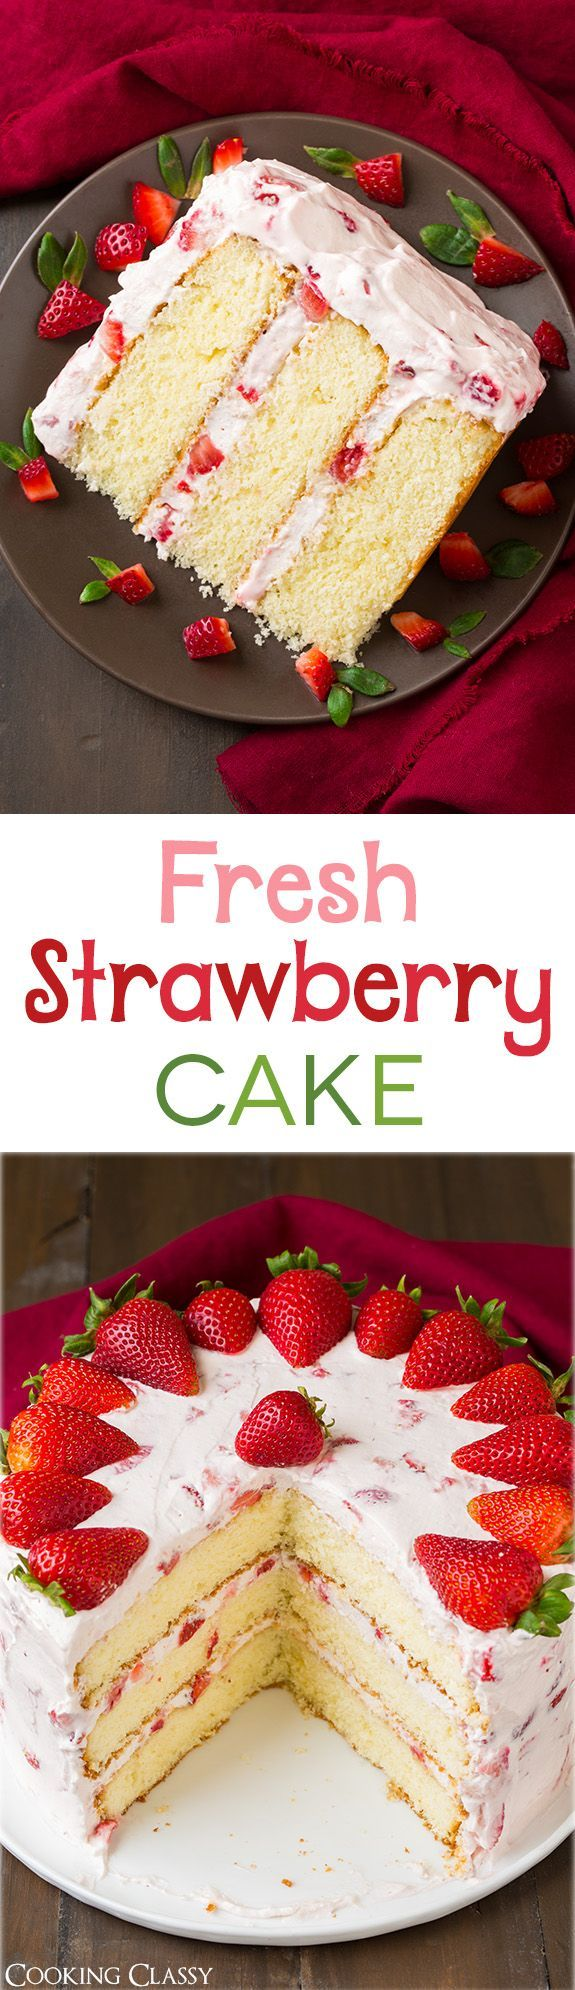 Fresh Strawberry Cake - This cake is DIVINE!! It's the perfect summer cake! The cream cheese in the whipped cream topping makes all of the difference.